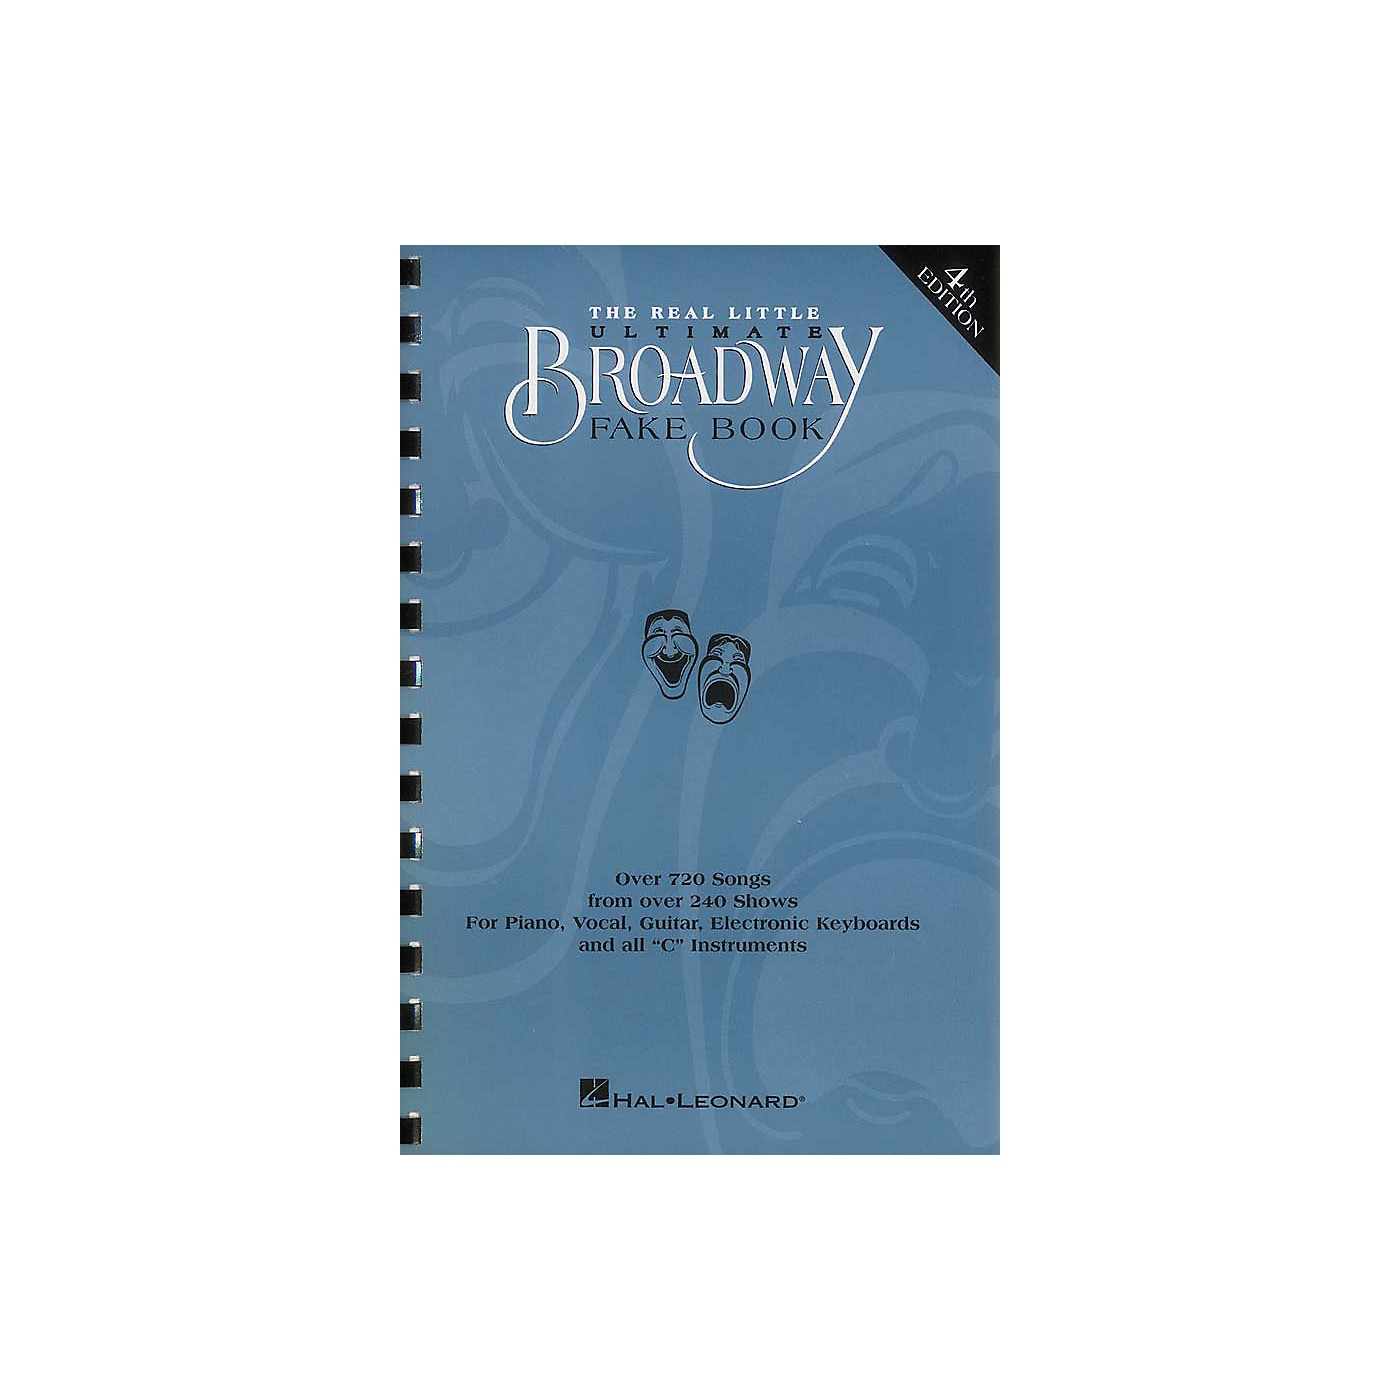 Hal Leonard The Real Little Ultimate Broadway Fake Book 5th Edition thumbnail